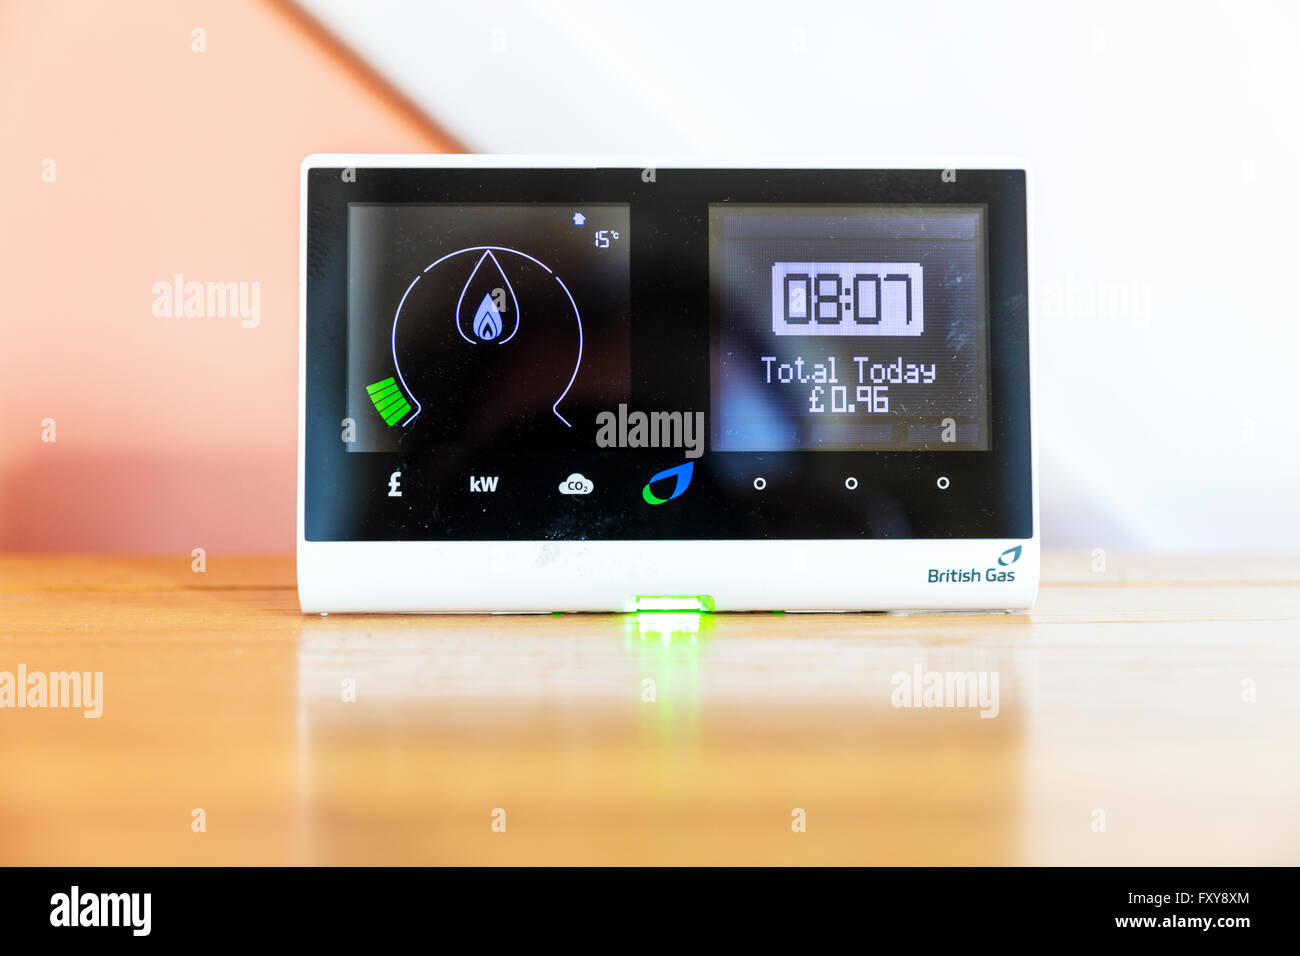 British Gas smart meter showing consumption of electricity and gas used in home usage British gas metering energy Stock Photo